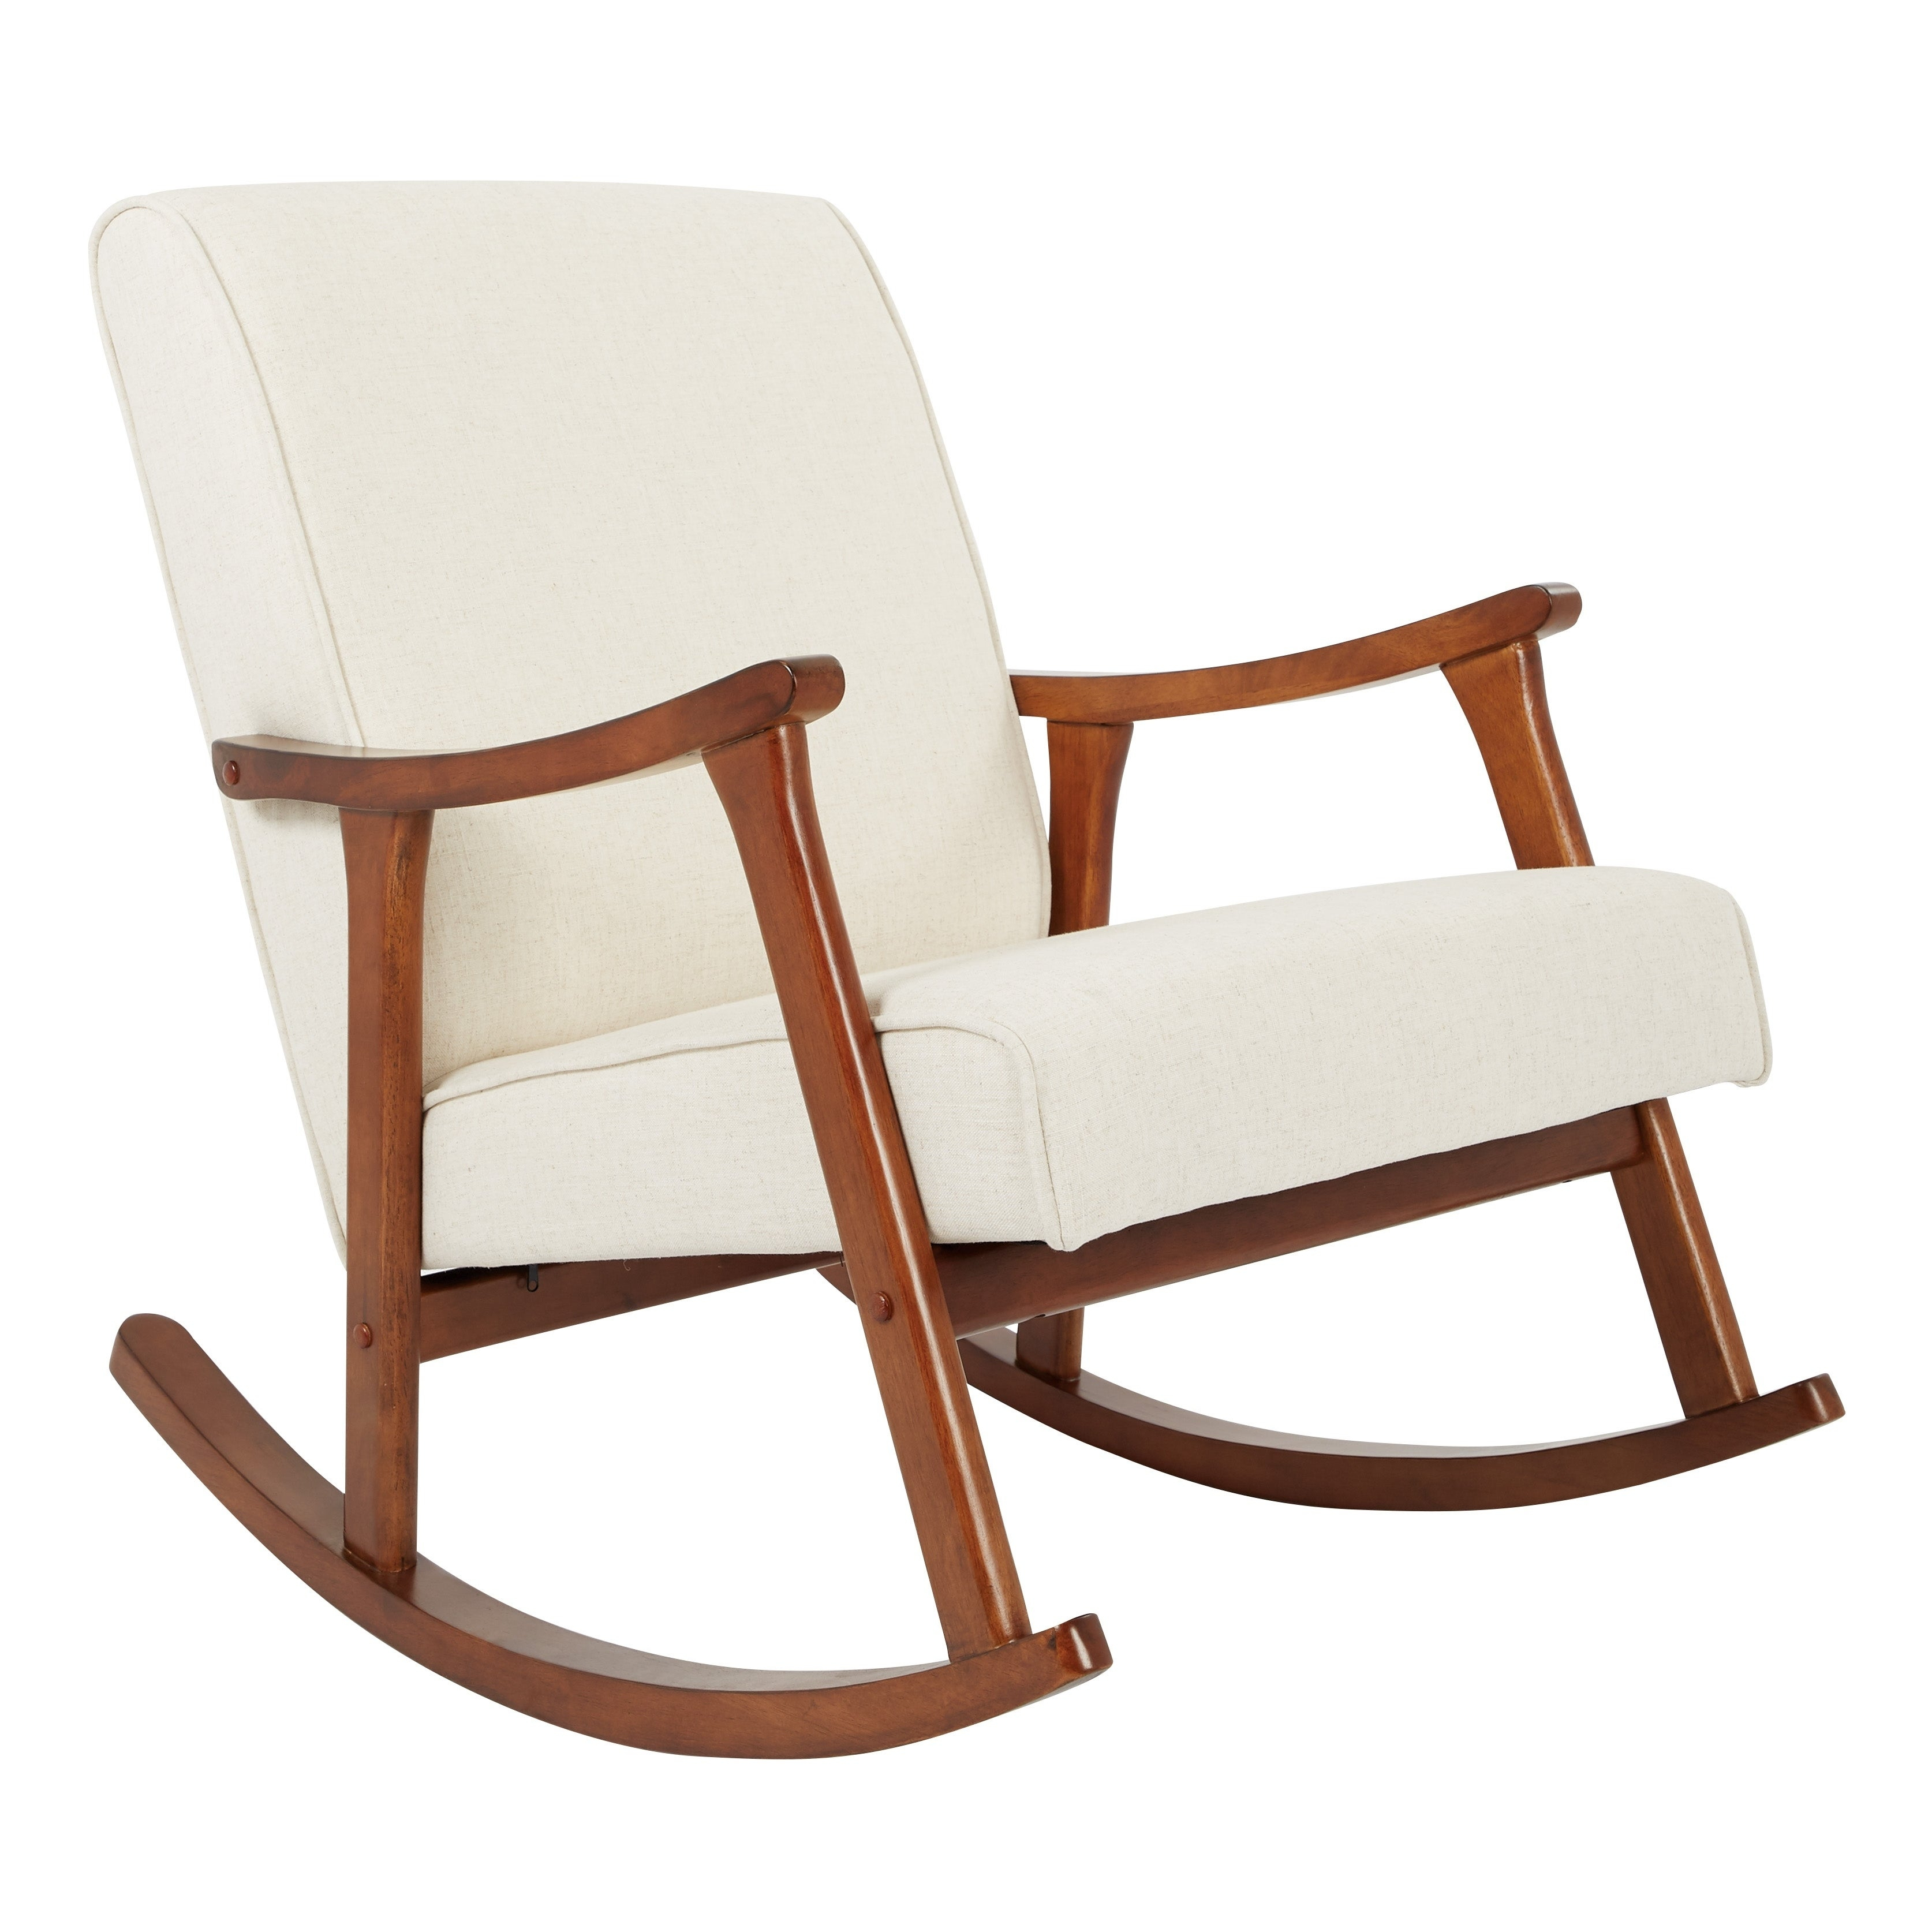 Osp Home Furnishings Gainsborough Rocker In Linen Fabric With Medium  Espresso Base Intended For Espresso Brown Rocking Chairs (#13 of 20)